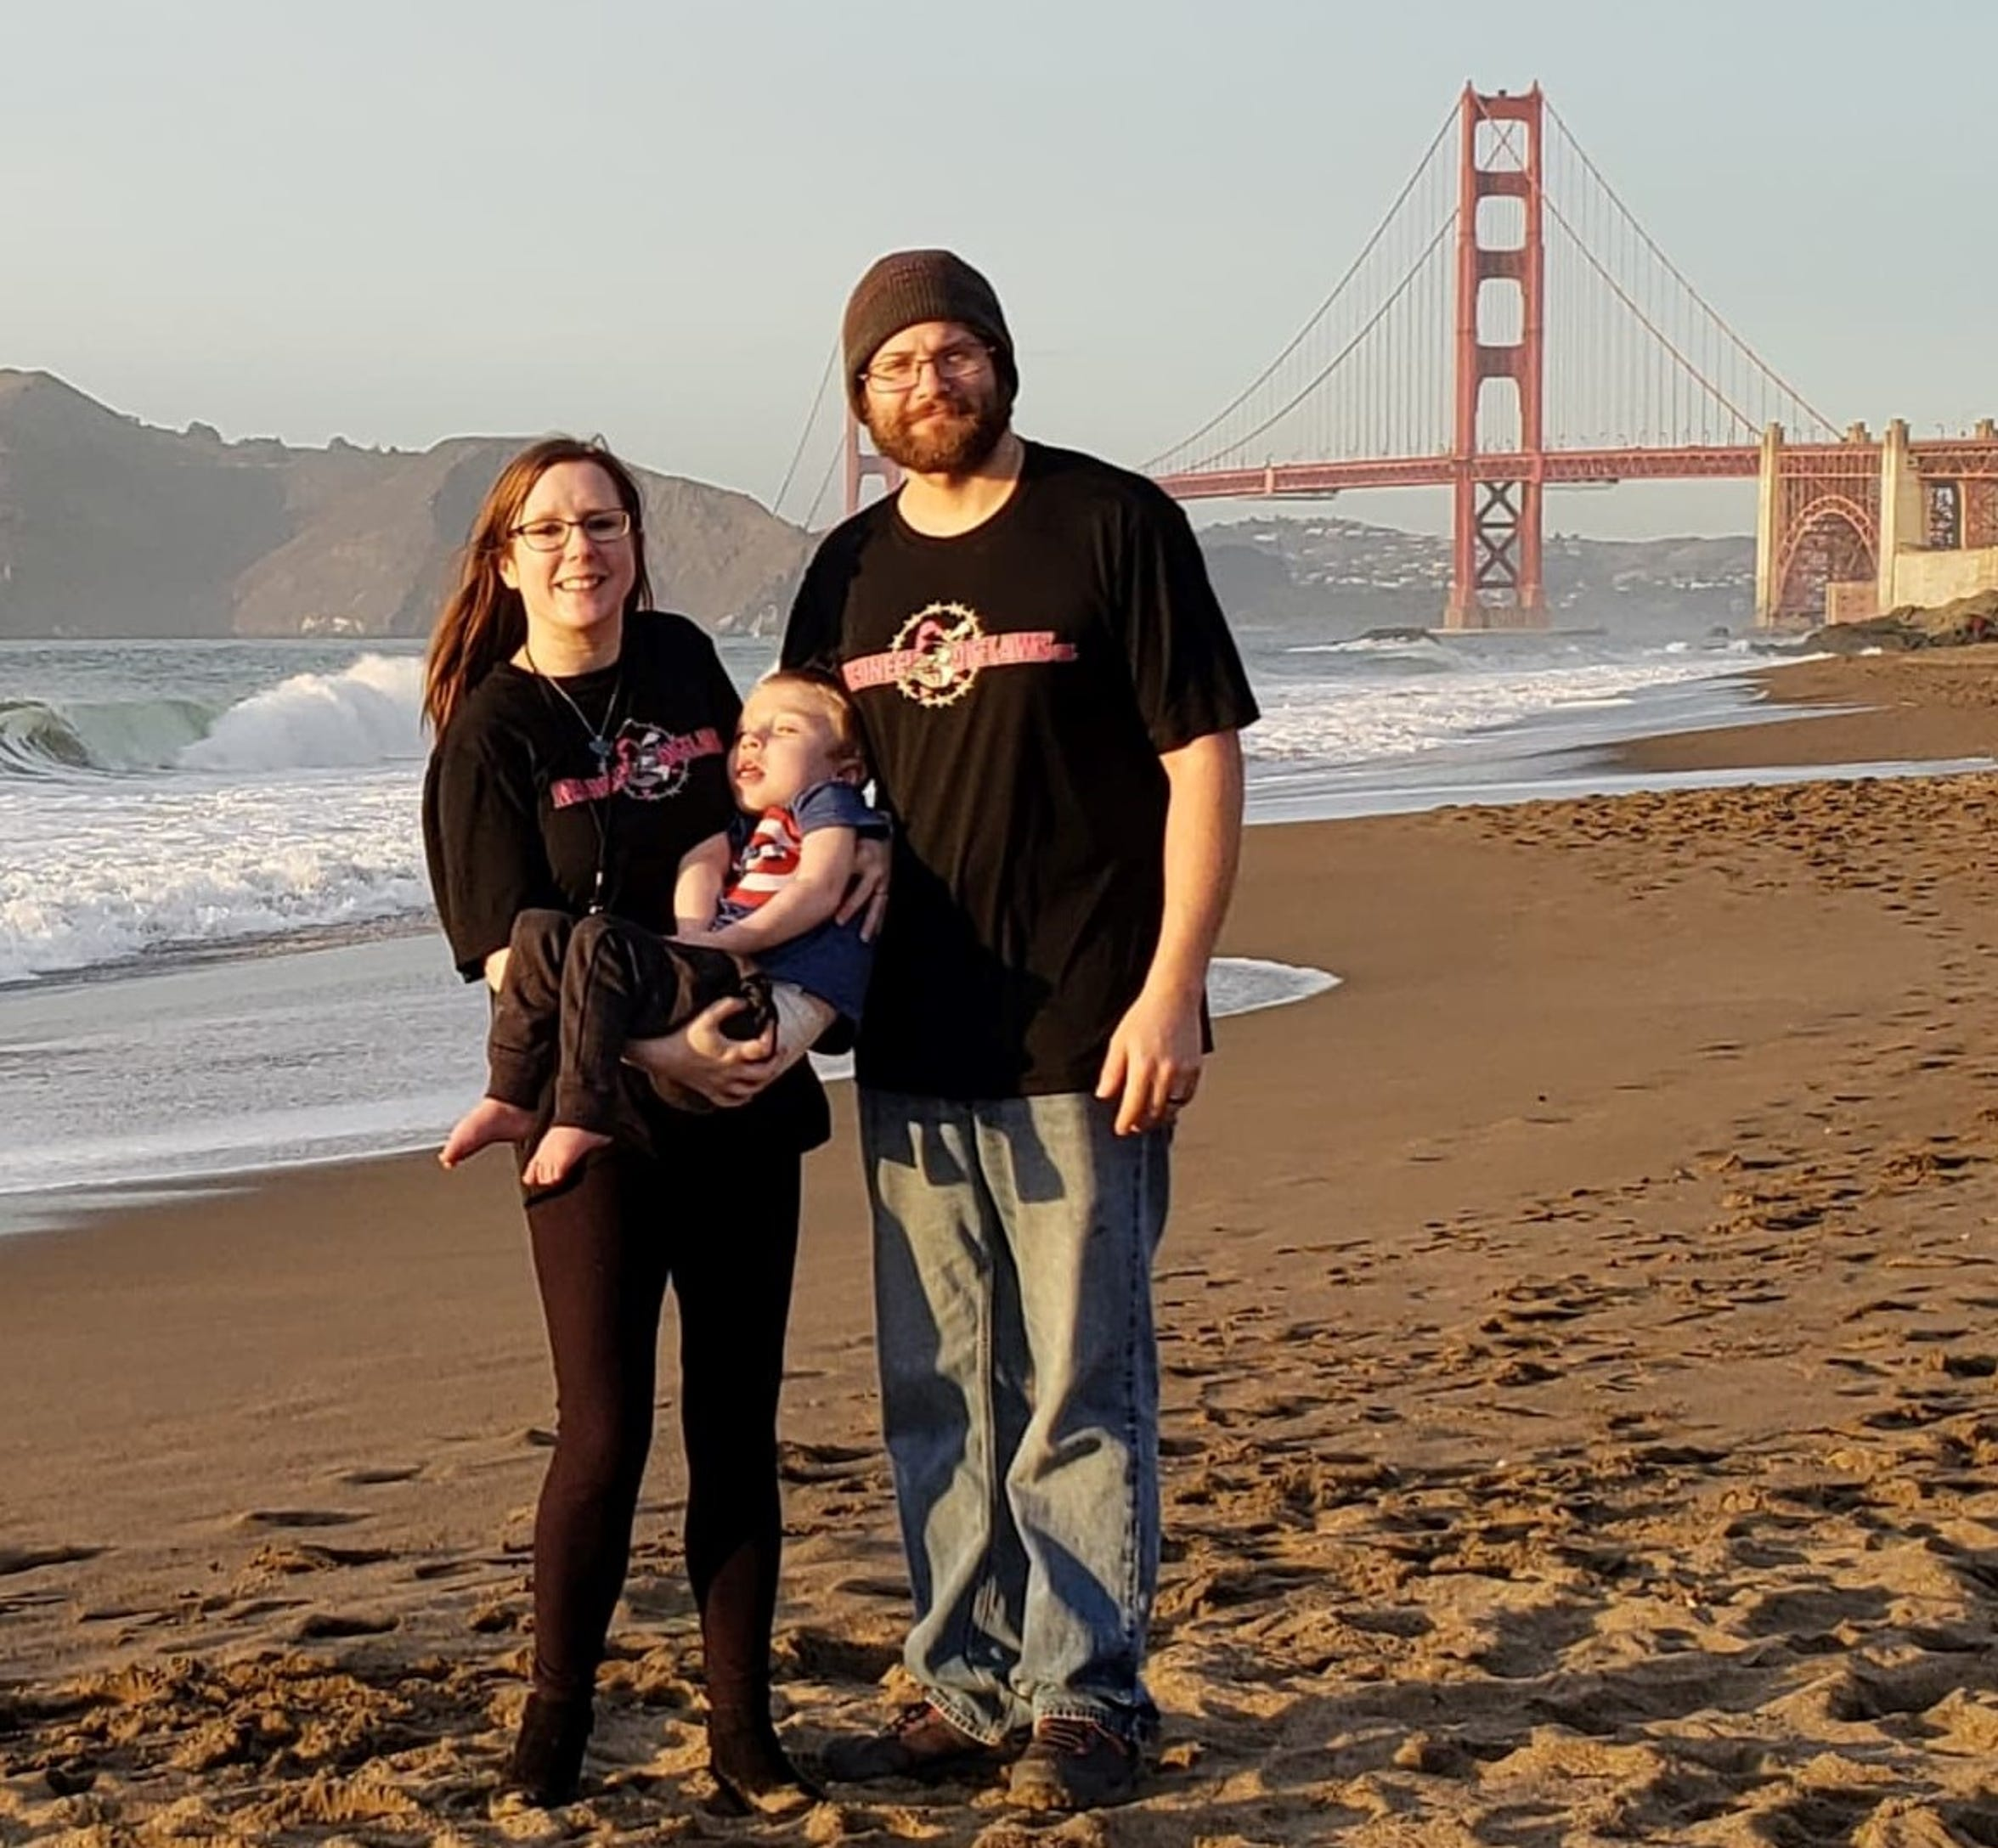 Laura, Logan and Cris Lacy, pictured in front of the Golden Gate Bridge in San Francisco, before Logan's gene therapy surgery on Dec. 18.